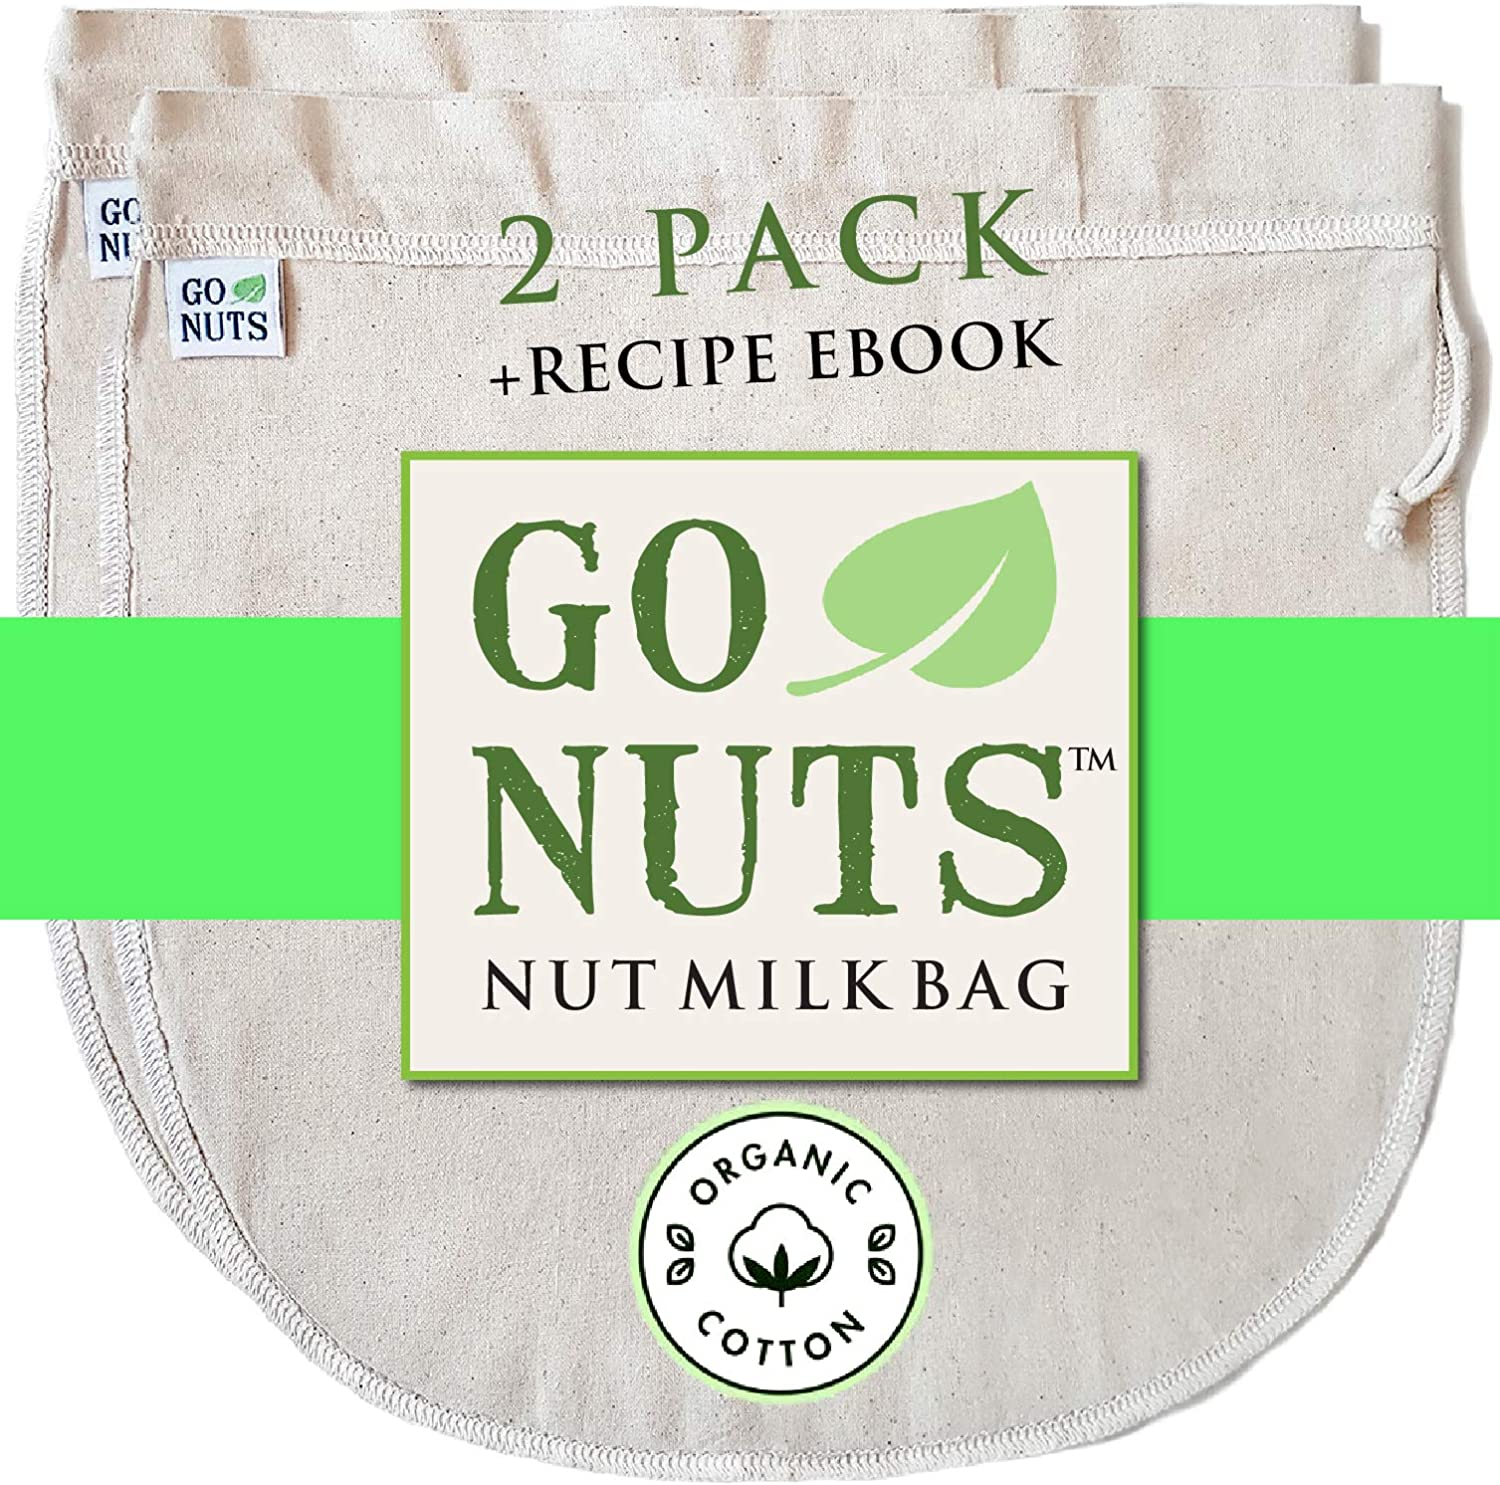 "2-PACK 100% ORGANIC COTTON Nut Milk Bag - Restaurant Commercial Grade by GoNuts - 12""x12"" Cheesecloth Strainer Filter For Best Almond Milk, Celery Juicing, Cold Brew Coffee, Tea, Yogurt, Tofu"